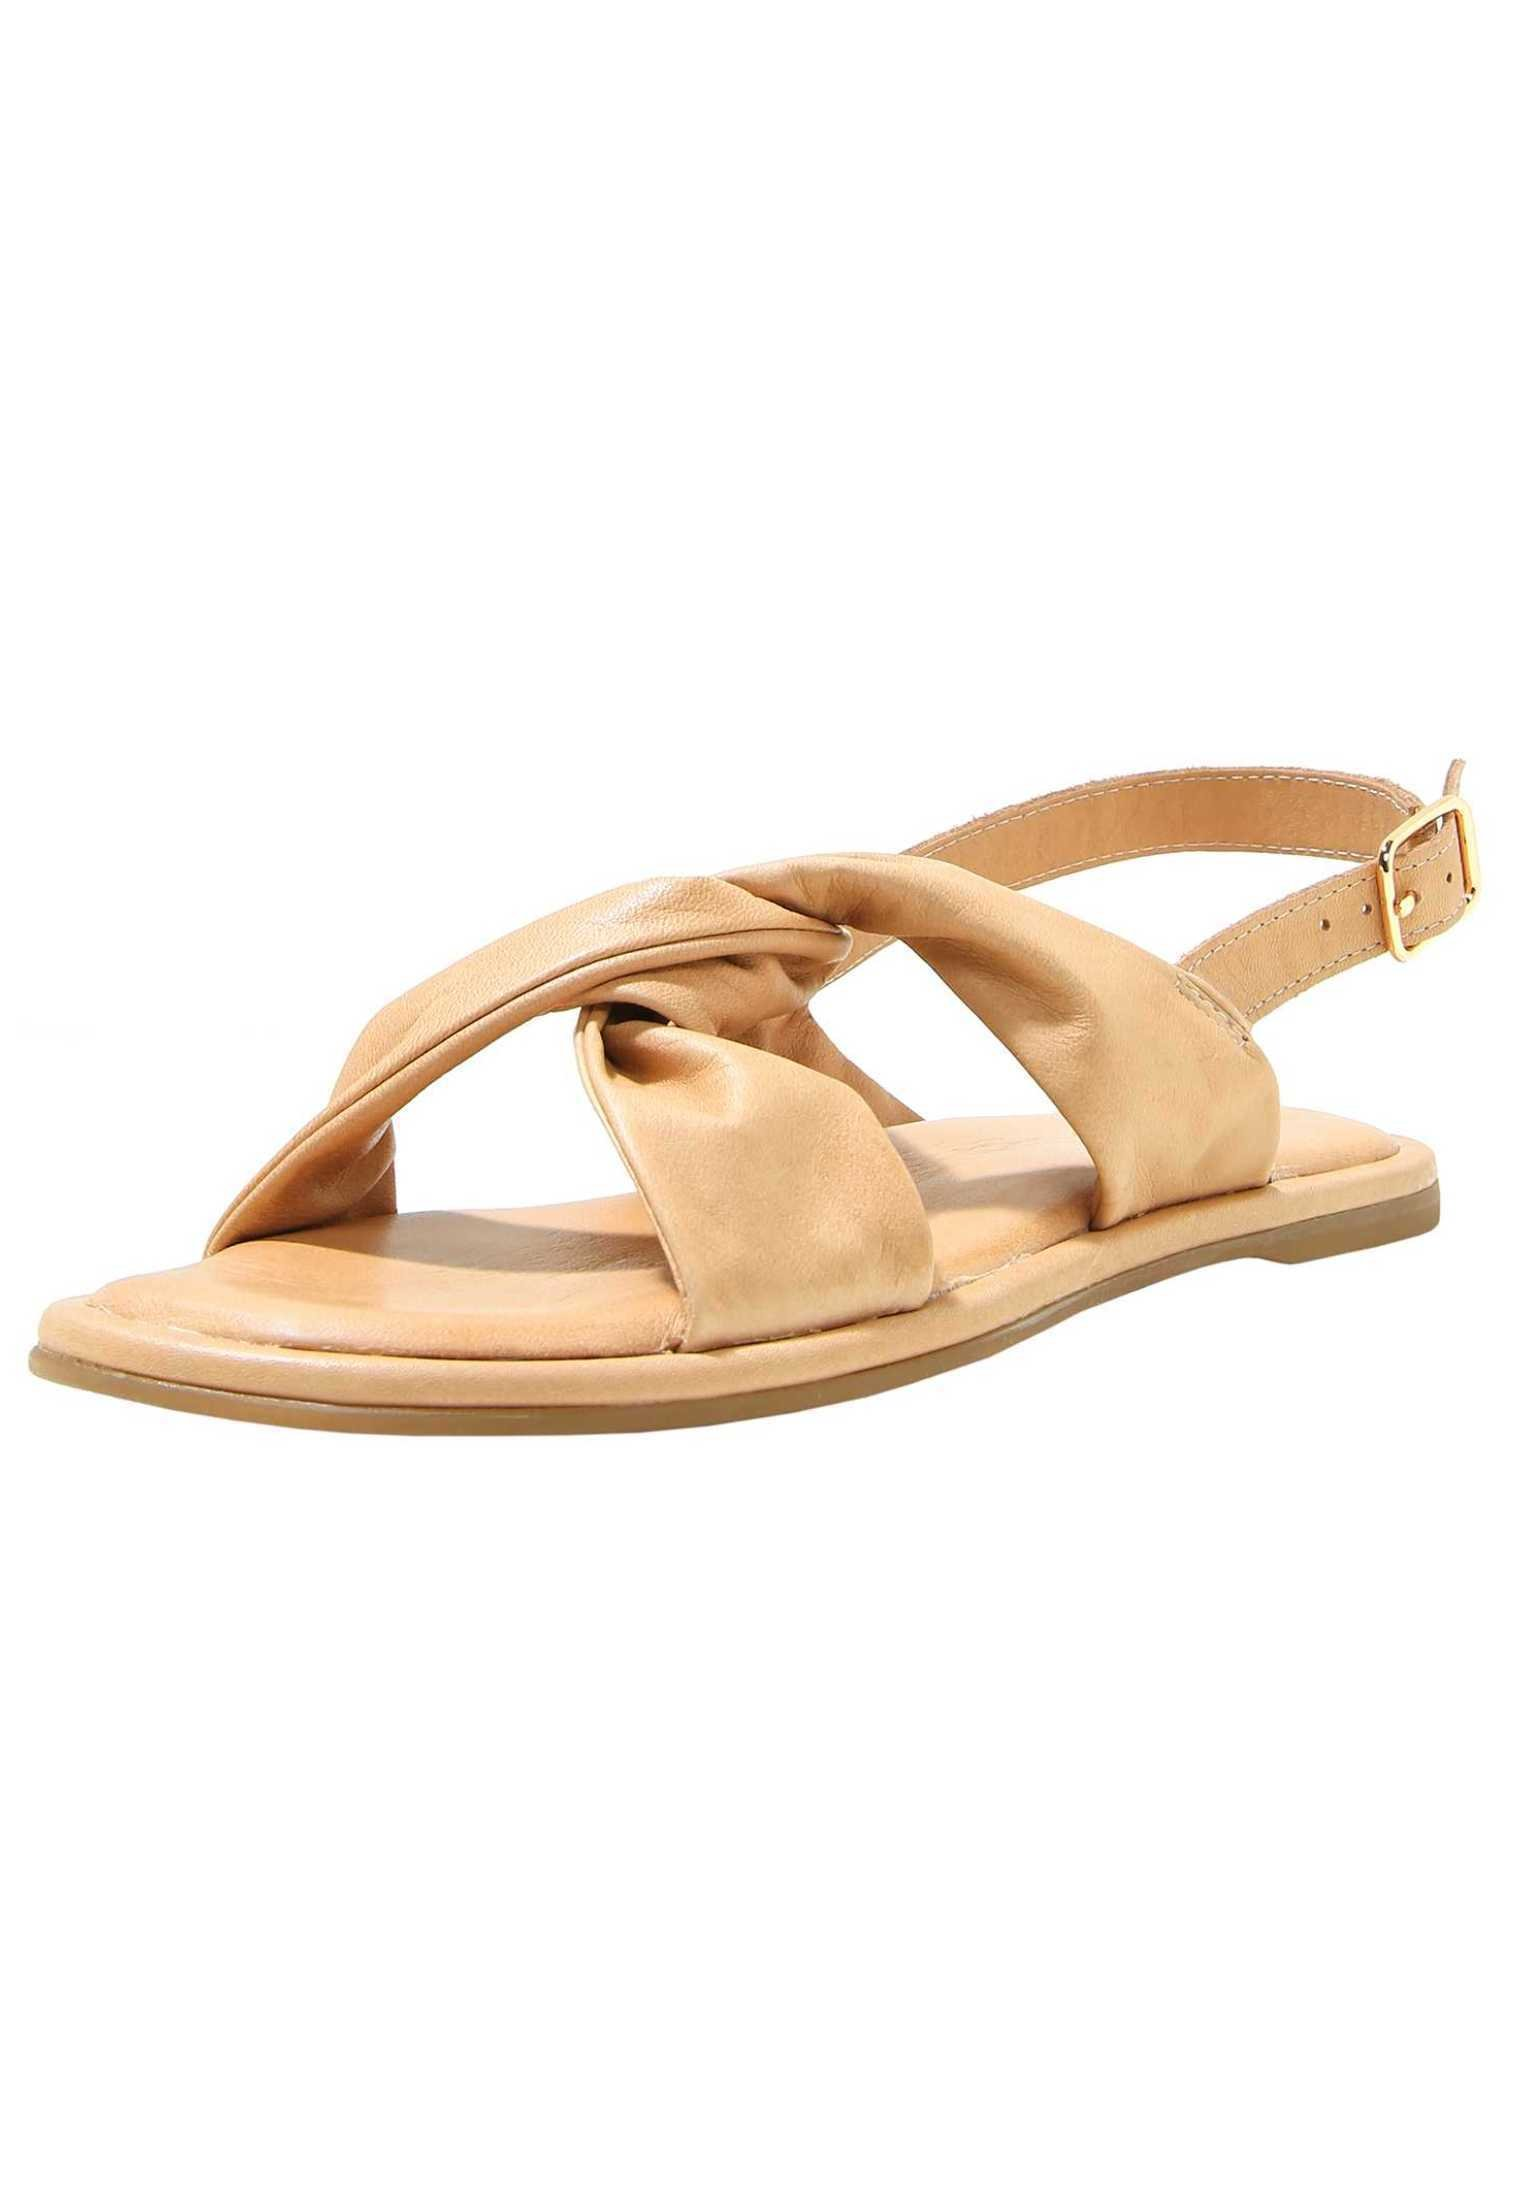 Inuovo Sandals - brown